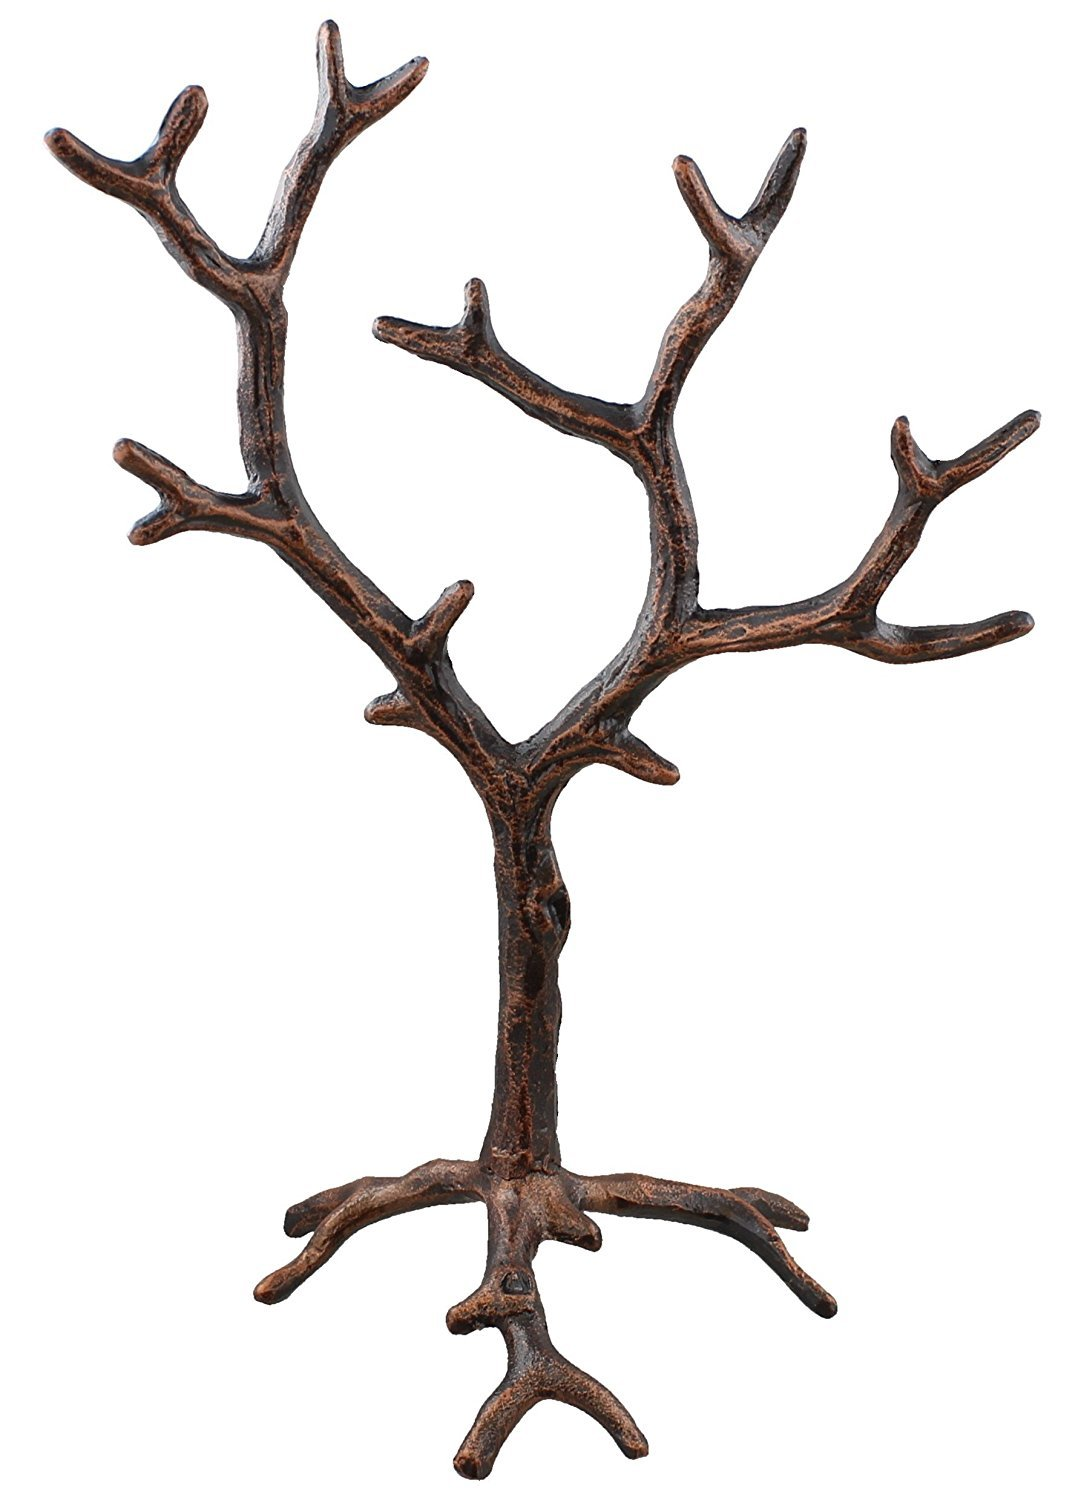 Solid Metal Jewelry Tree Display Stand / Decor Piece - Rustic Copper Finish Marco Int'l